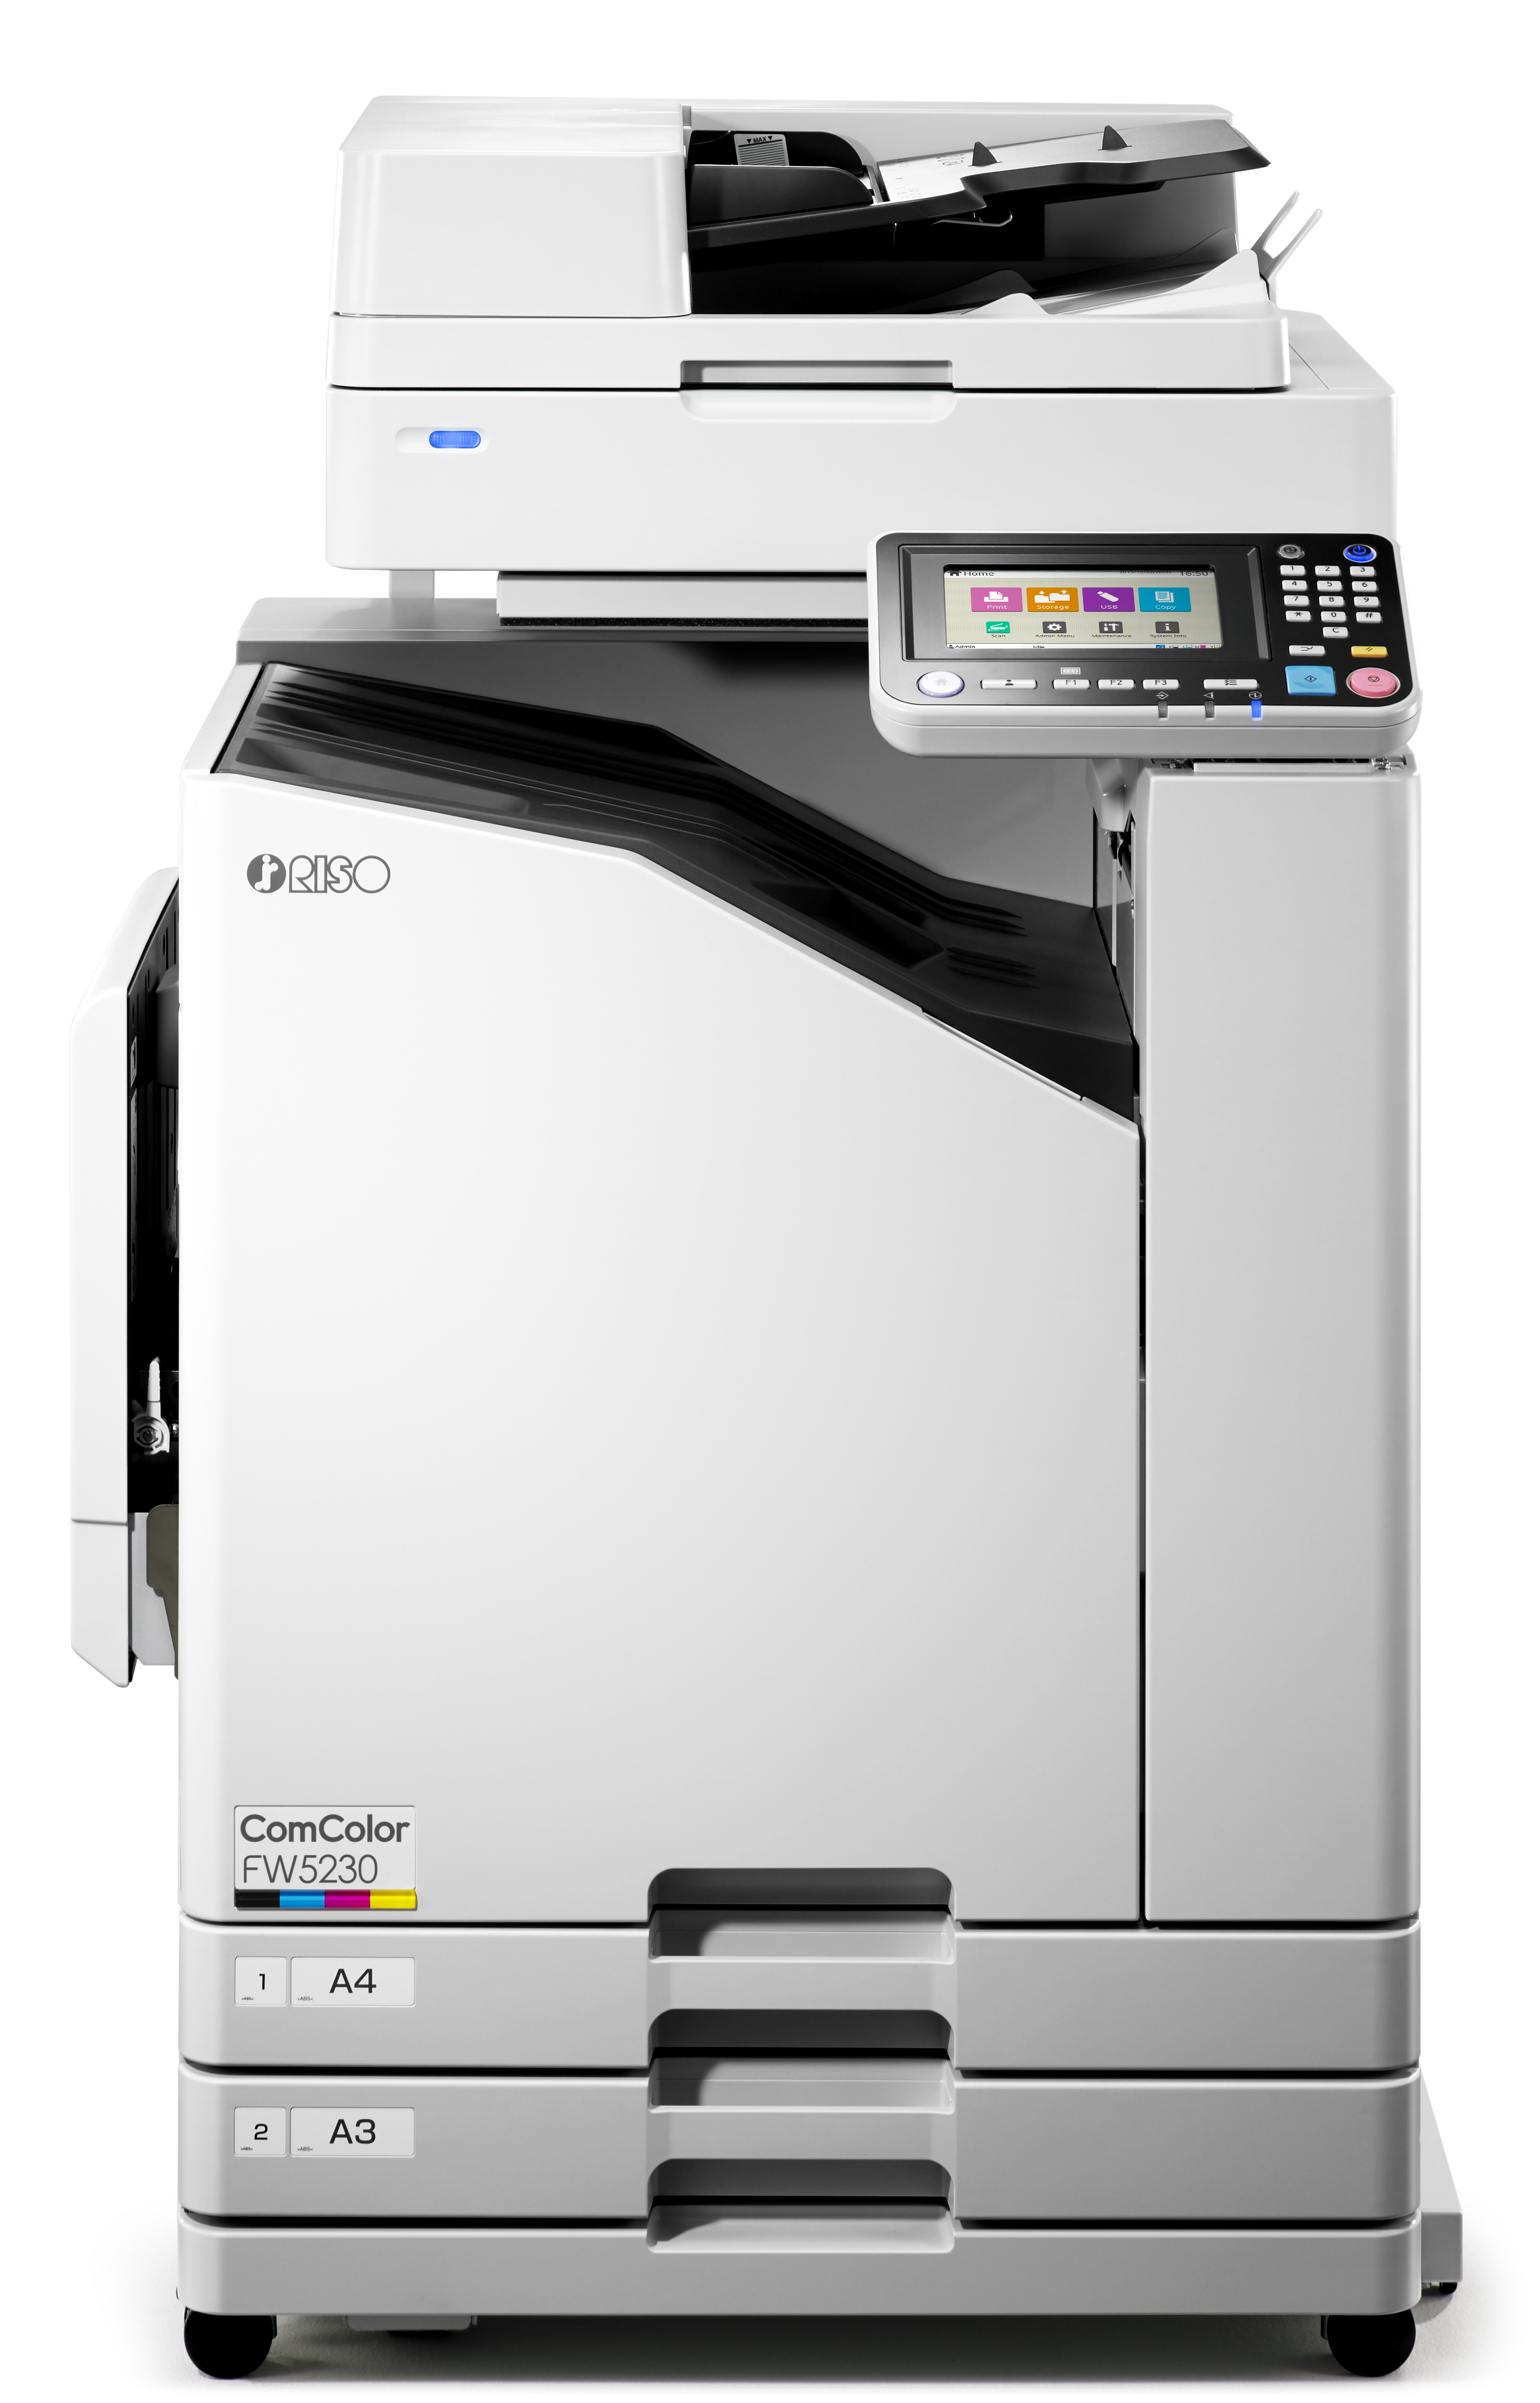 ComColor FW5230.JPG